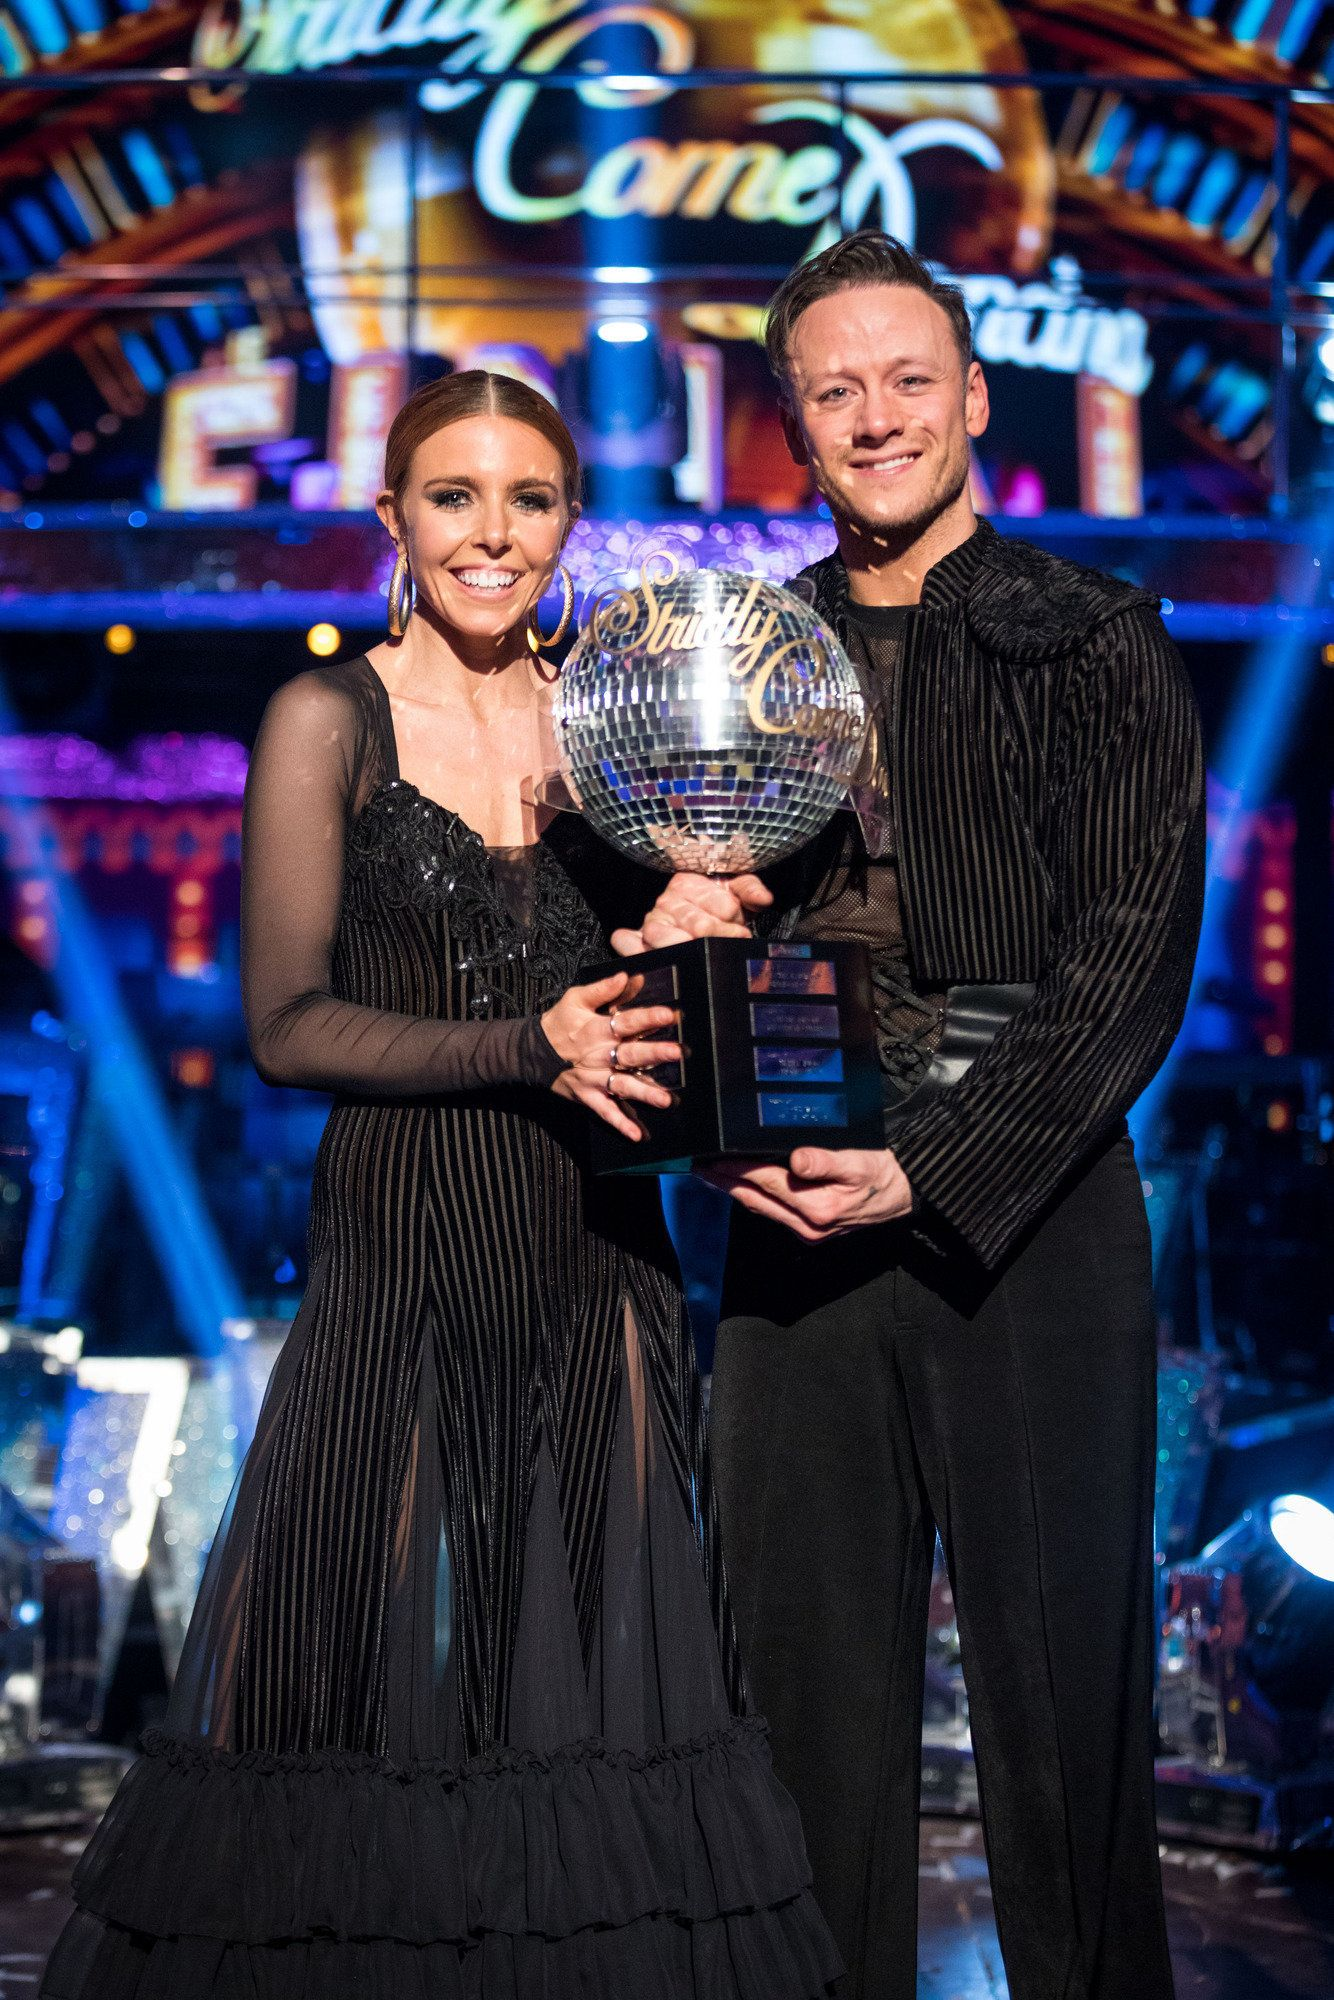 Stacey Dooley and Kevin Clifton were crowned this year's champions on